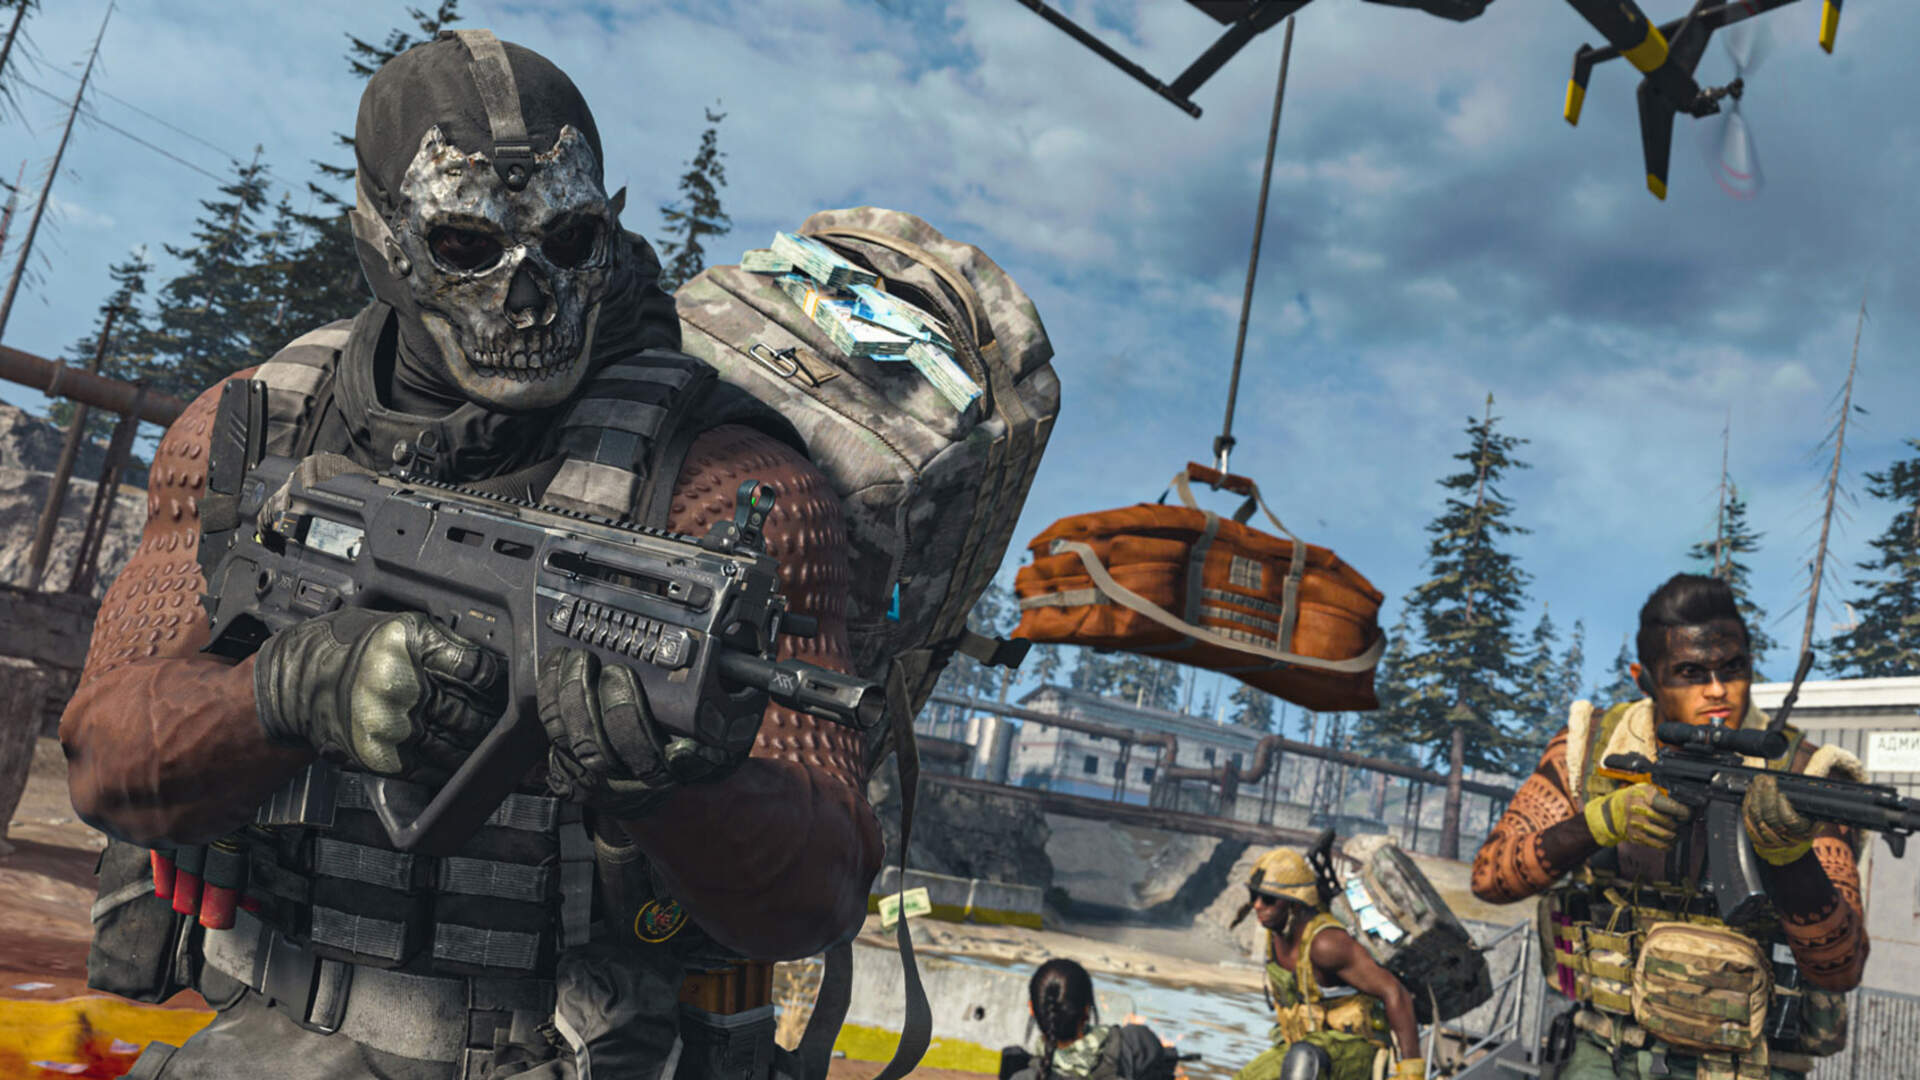 Why Fans are Pleased With Call of Duty: Warzone's Lack of Skill-Based Matchmaking